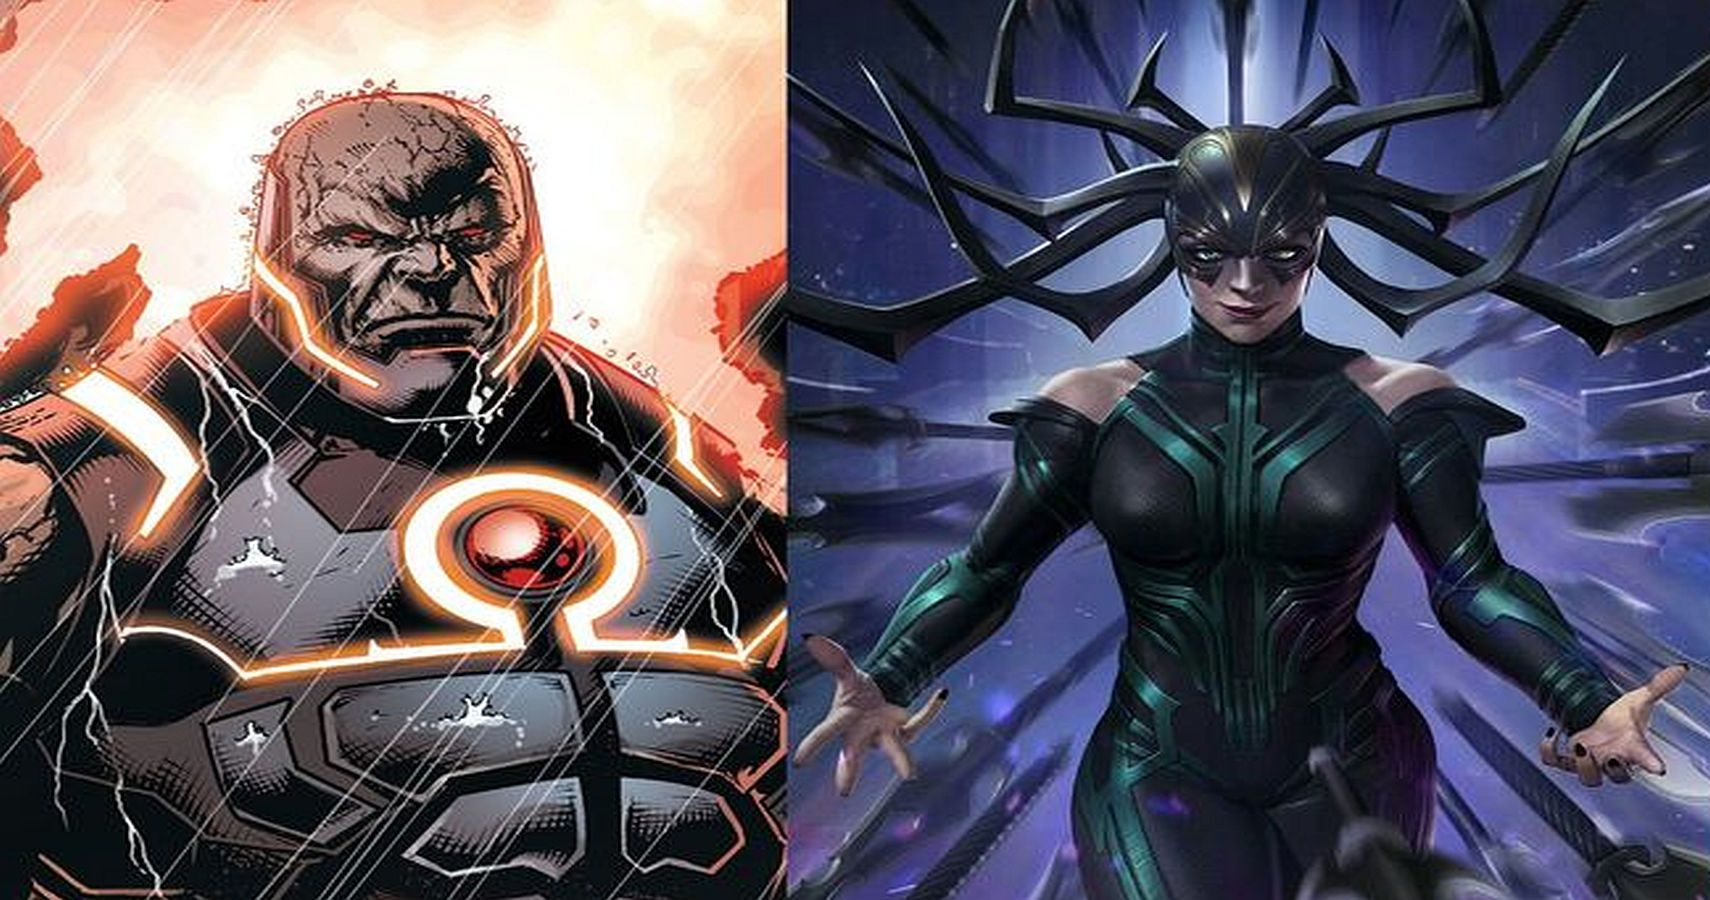 10 Villains Who Need To Be Introduced Into The DC